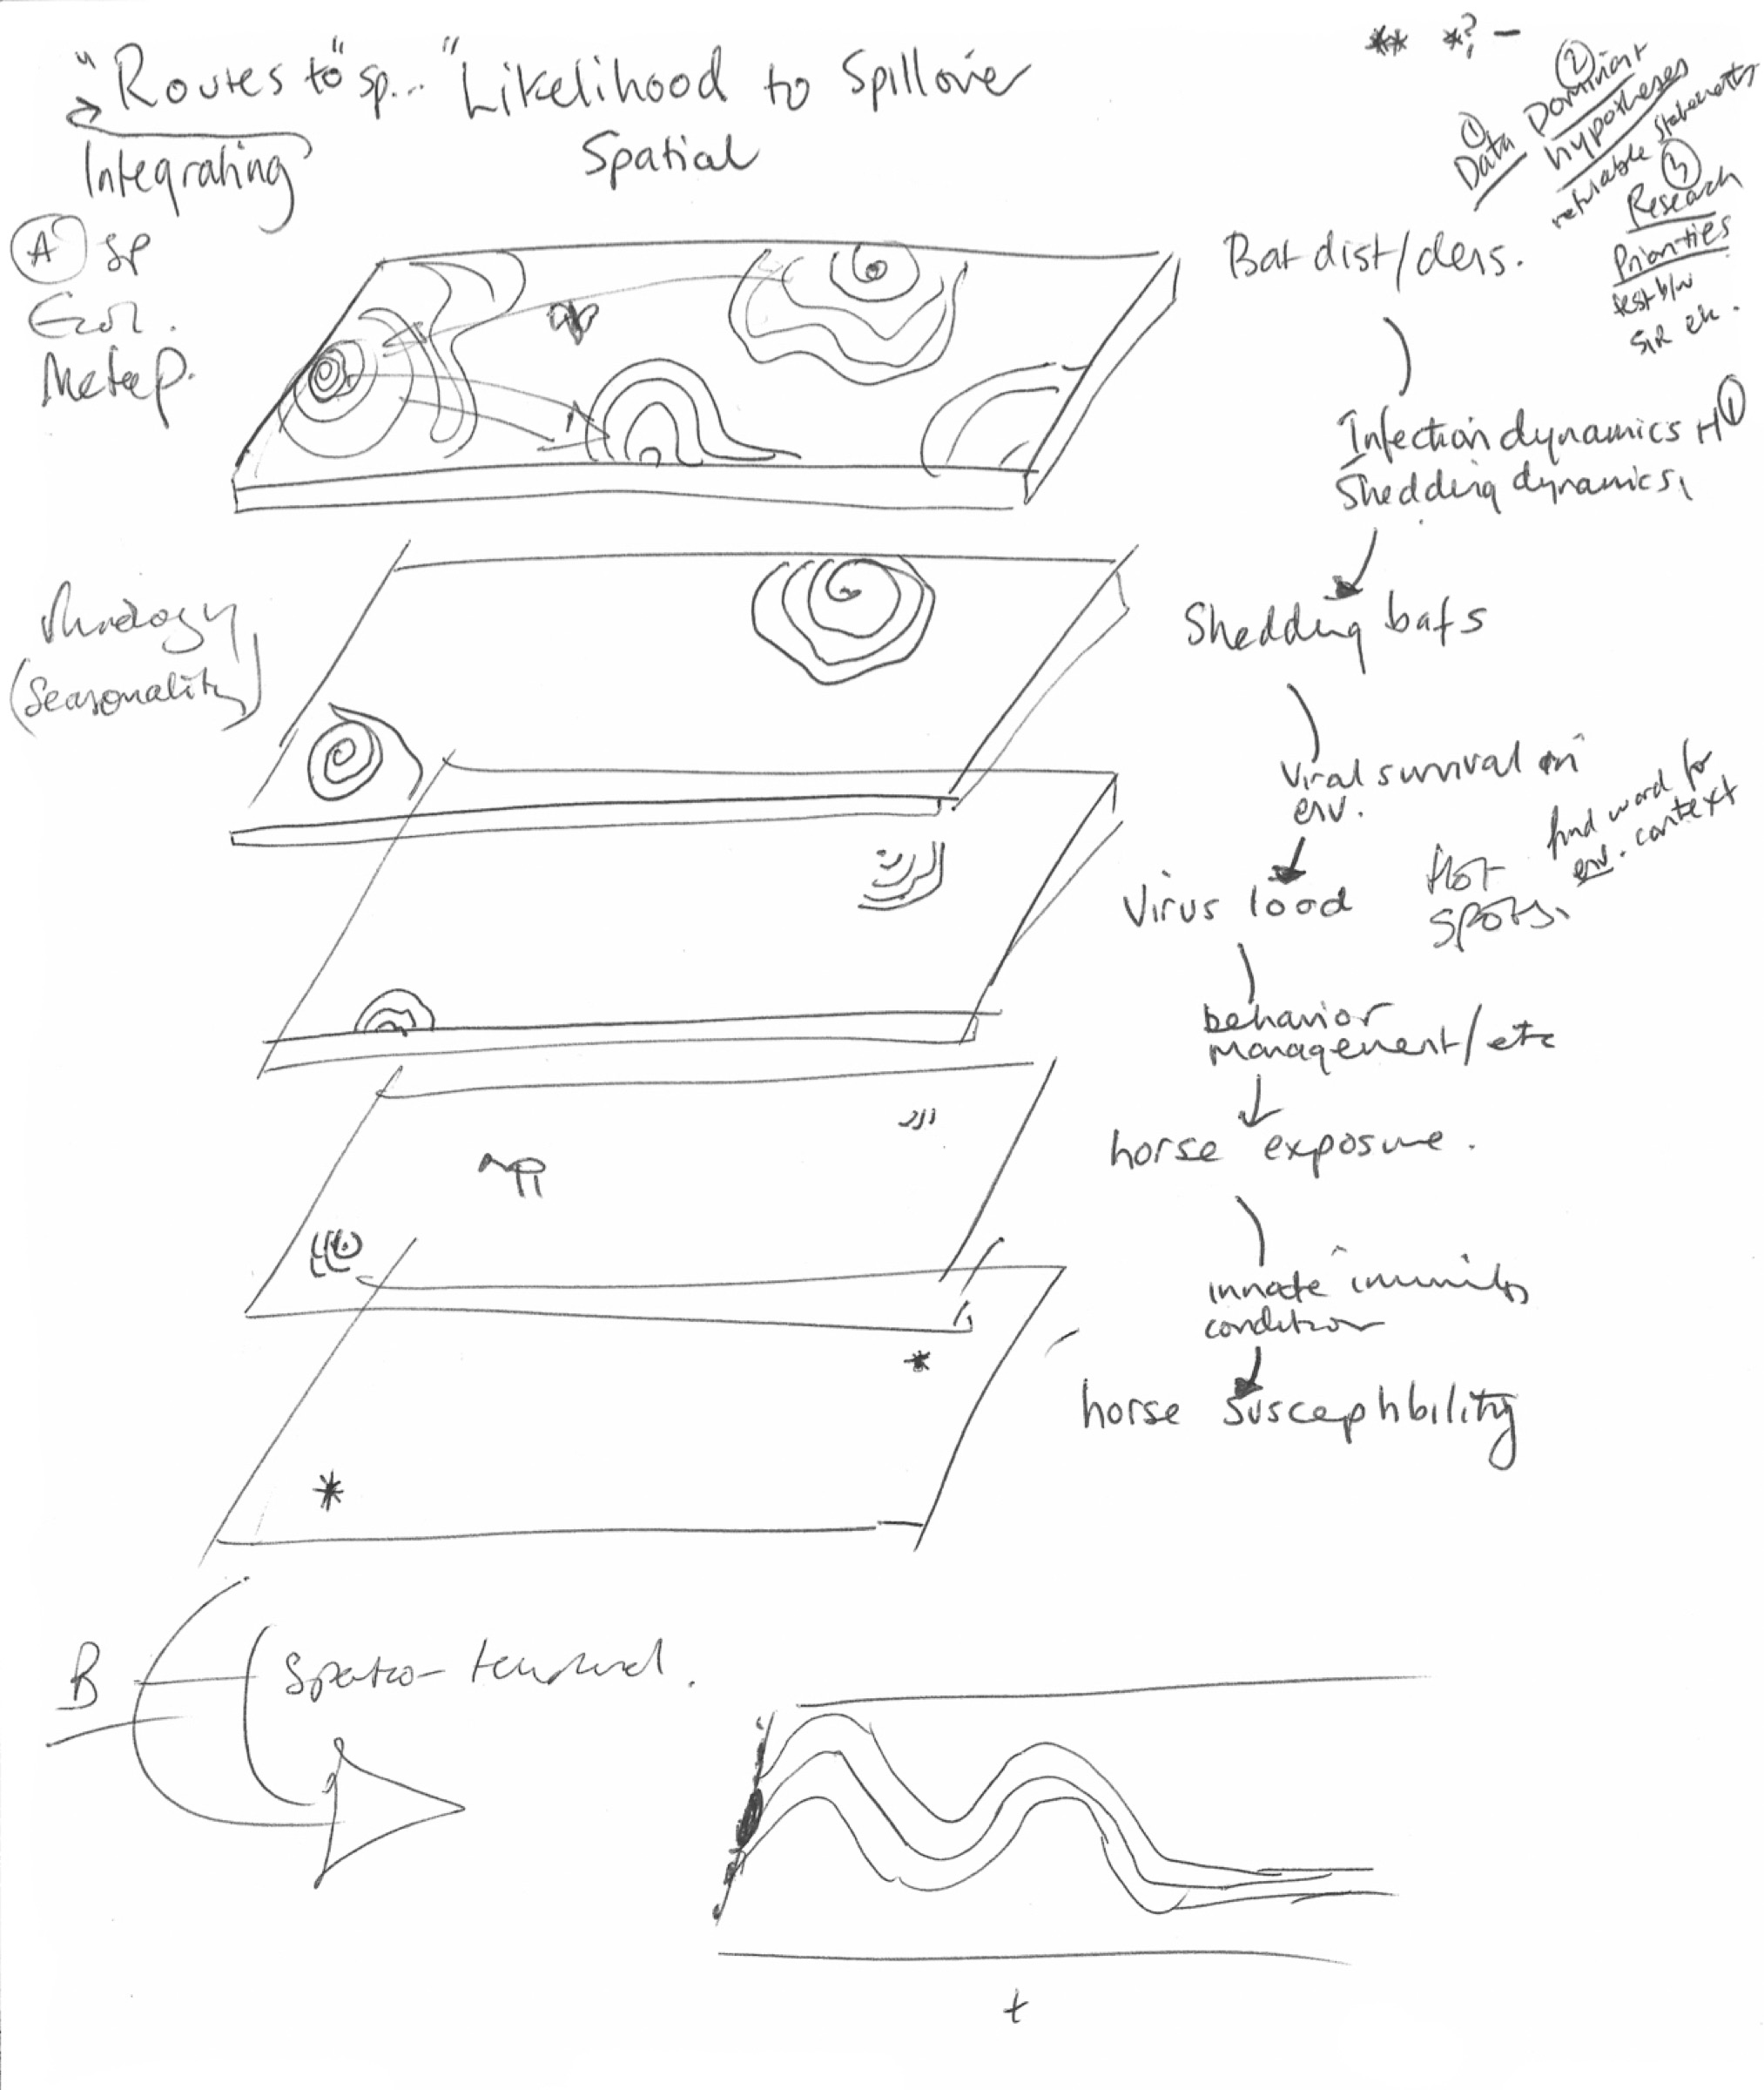 When Raina Plowright began to look at the many factors that influence the spillover potential of viruses like Hendra and Nipah, she began envisioning the route a virus must take as being punctuated by a series of layers whose holes can open or close to make transmission easier or harder. This is one of her early sketches of that concept.